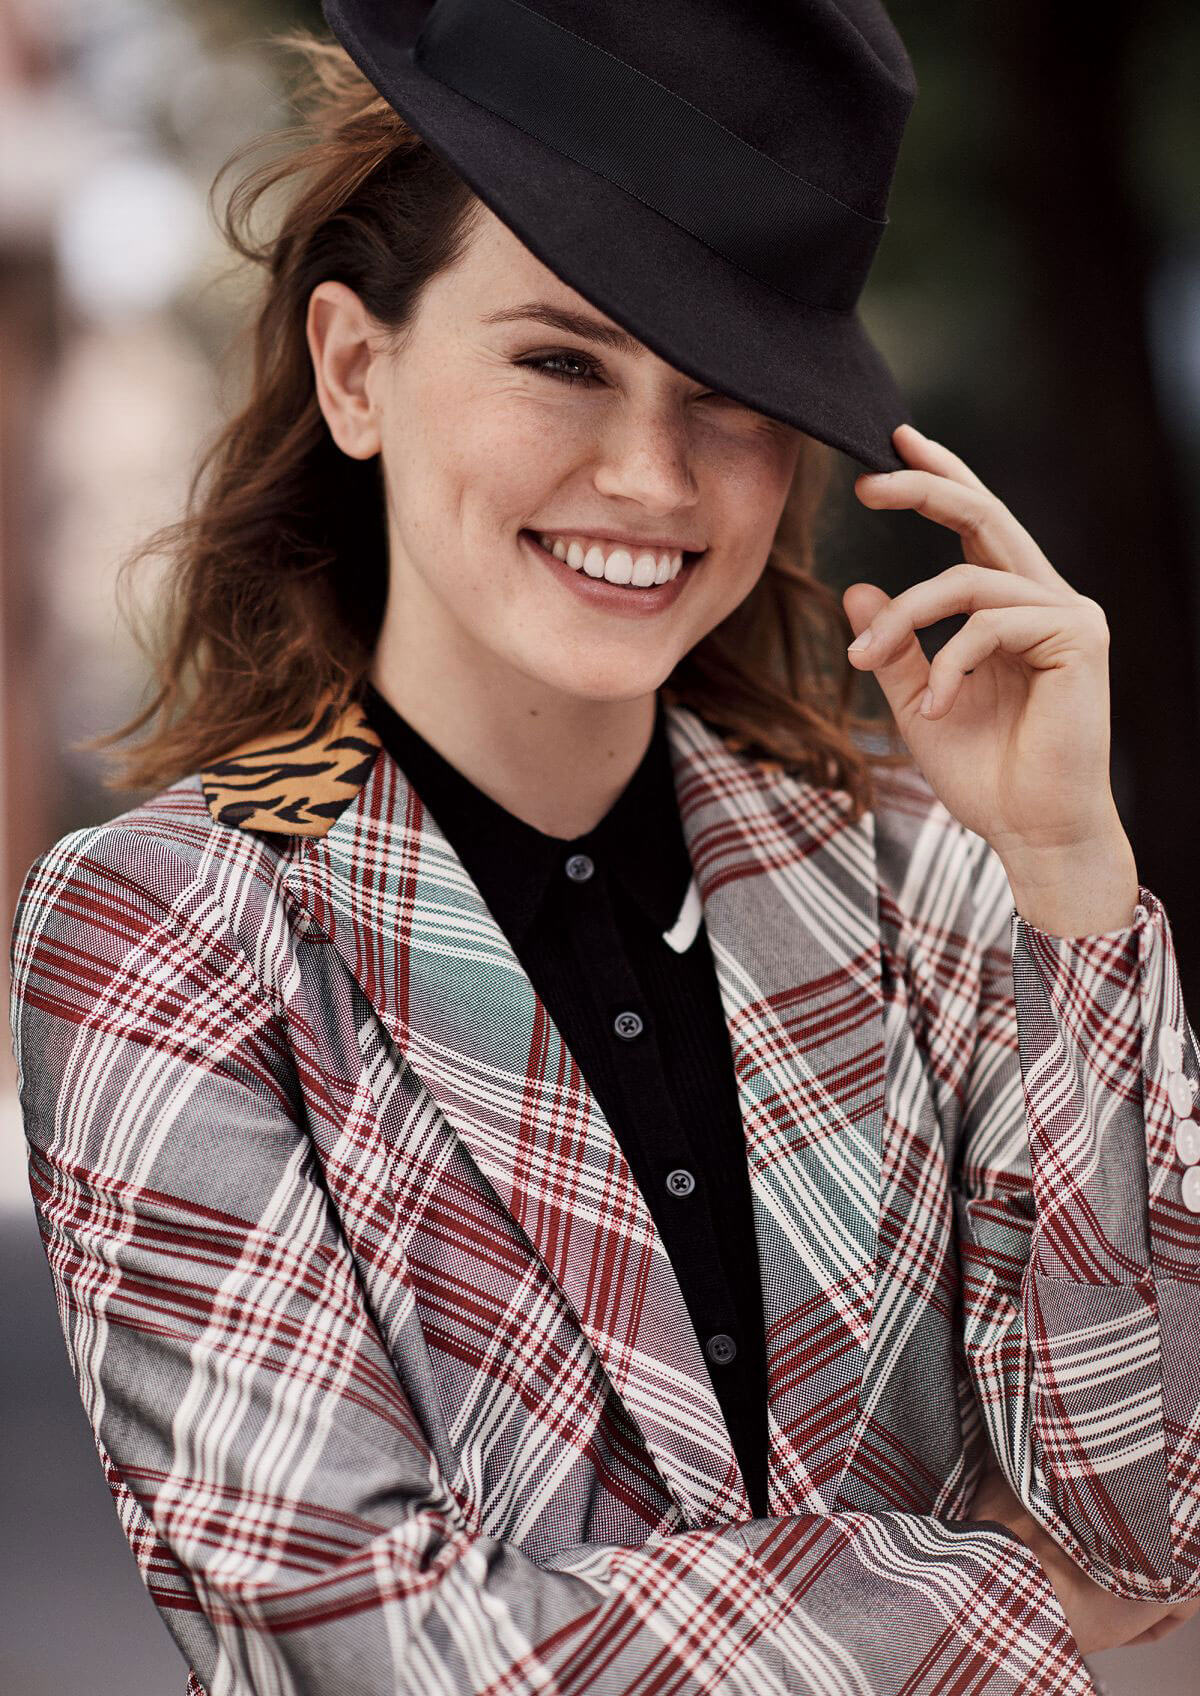 Daisy Ridley Stills in Glamour Magazine, January 2018 Issue